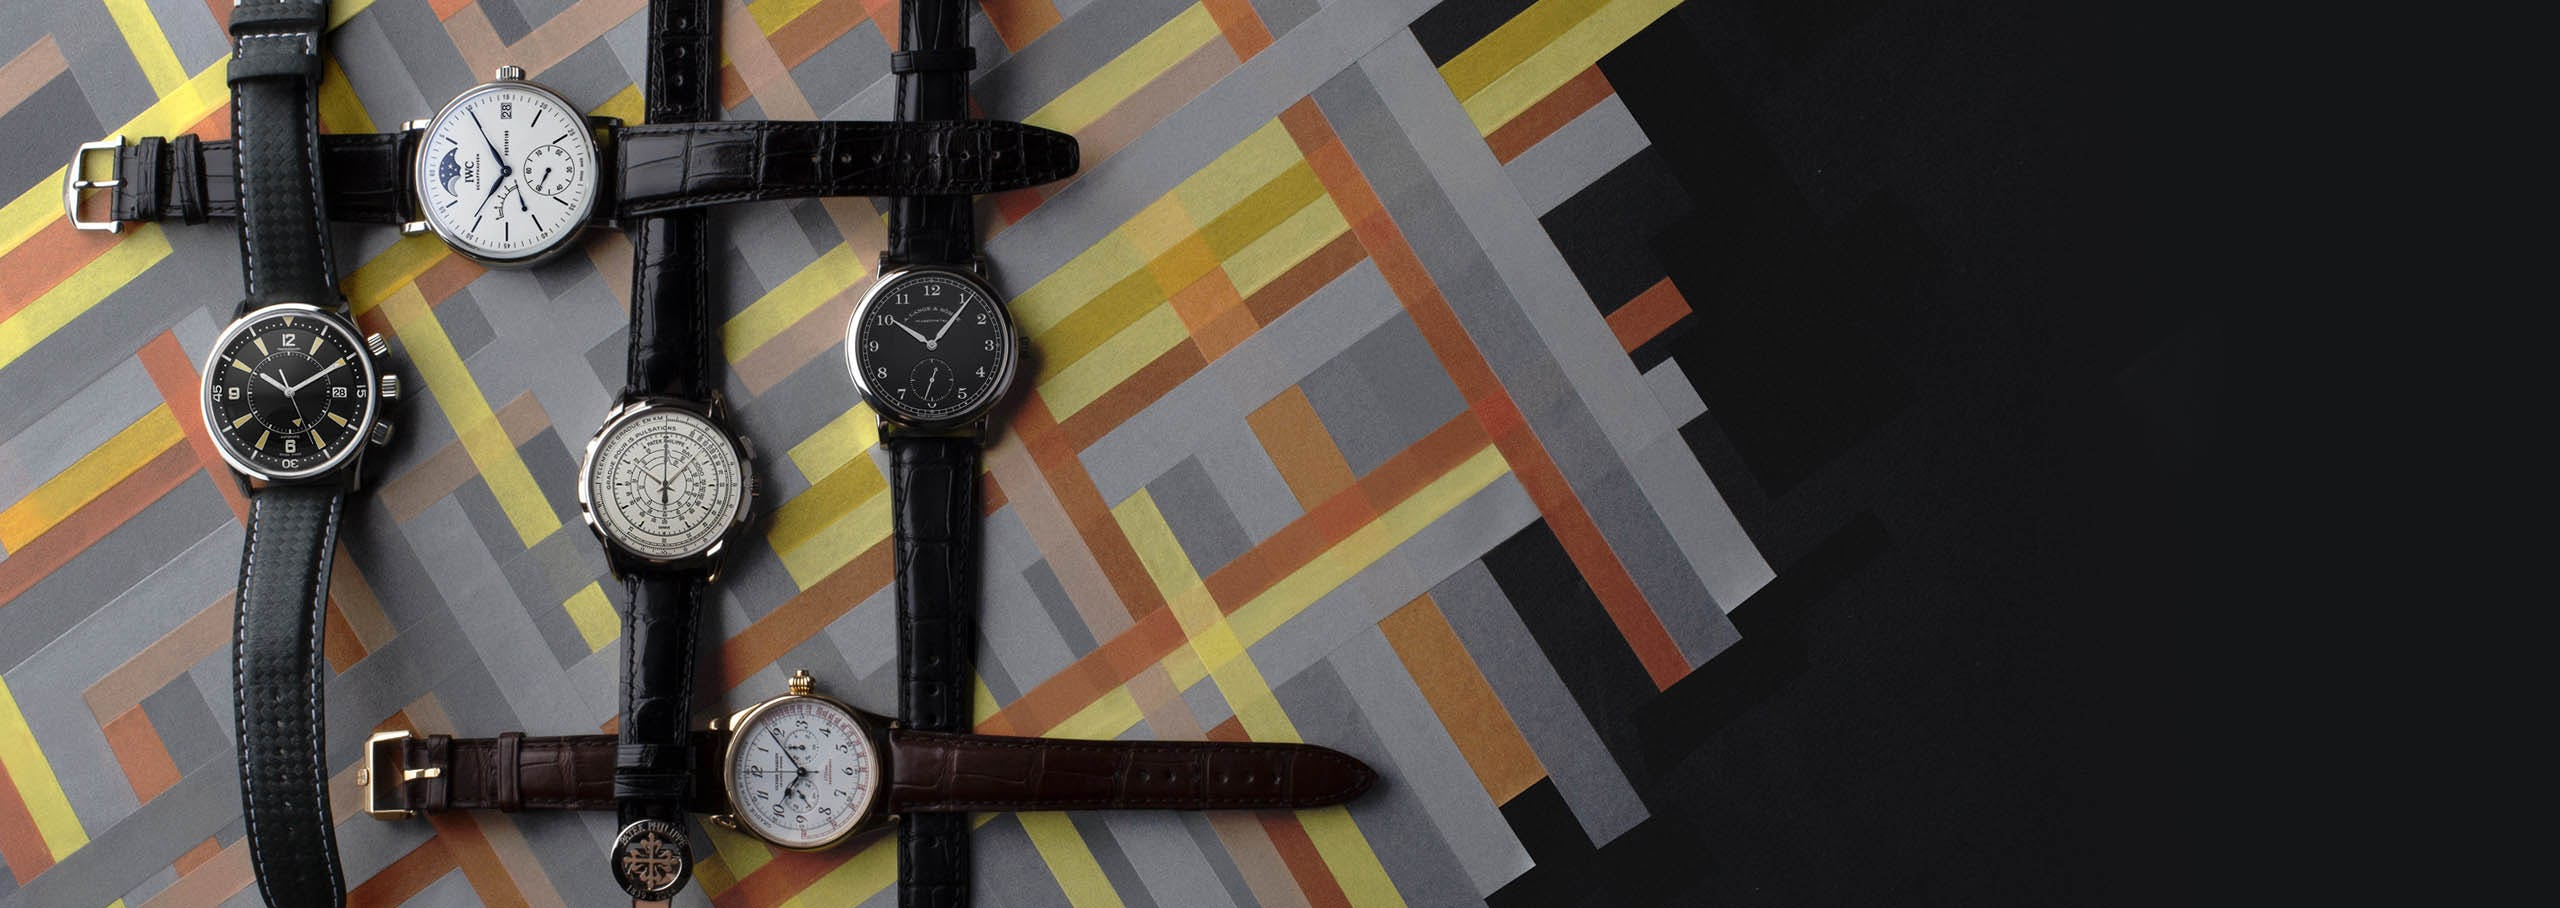 Anniversary Watches and Why We Love Them